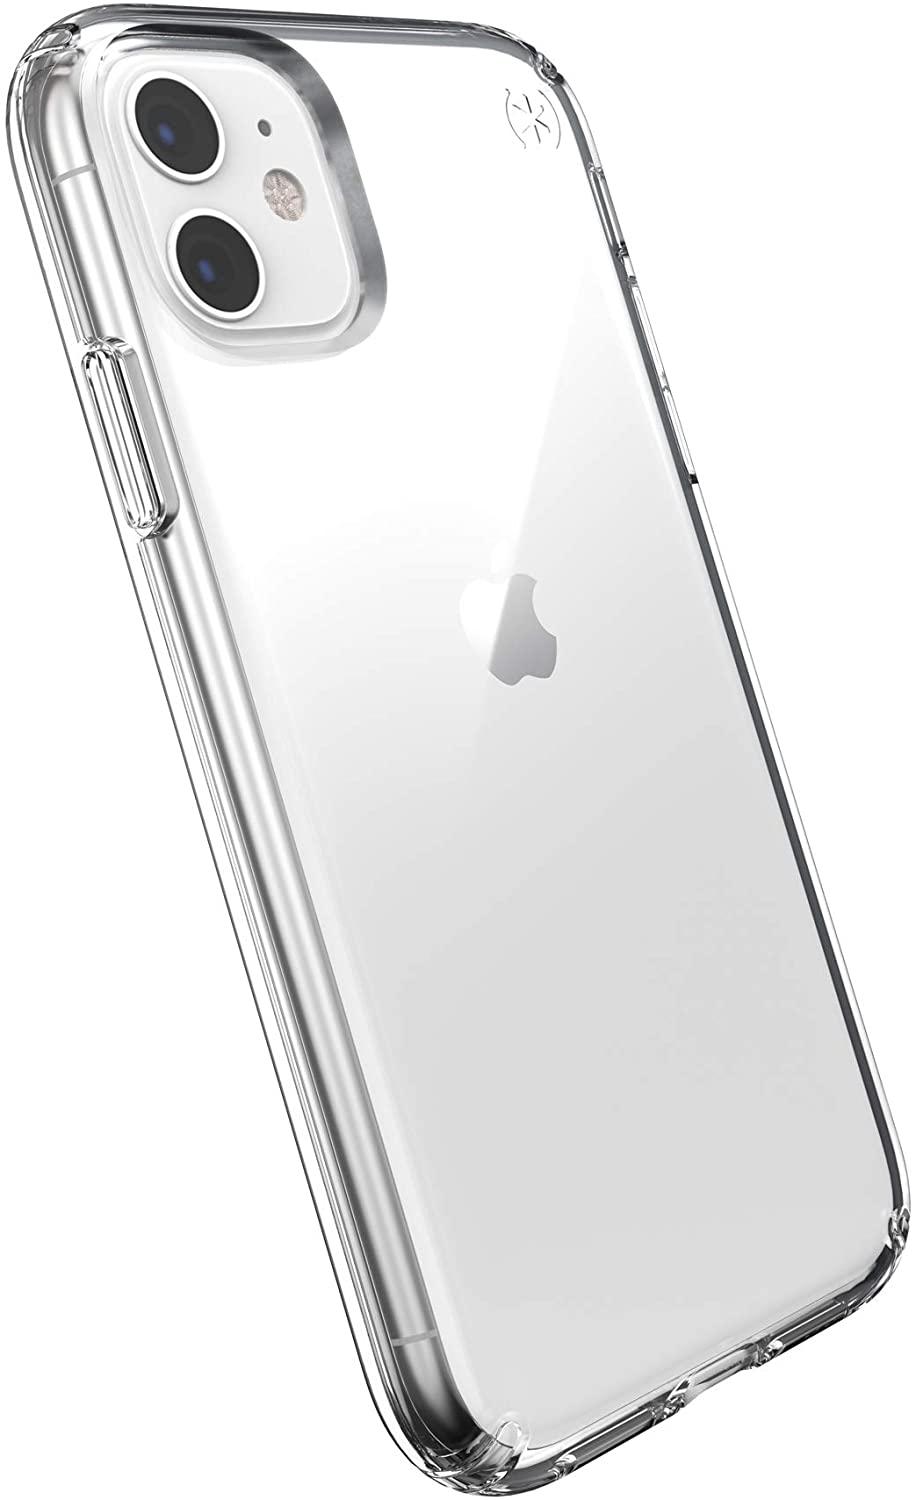 Ha6ffe324547f410fac8835ef3a580f37c - For iPhone XR 11 SE 2020 Case Crystal Clear Phone Case for iPhone SE 8 7 6s 6 5s 11 Pro Max Xs Max Case TPU Shockproof Cover